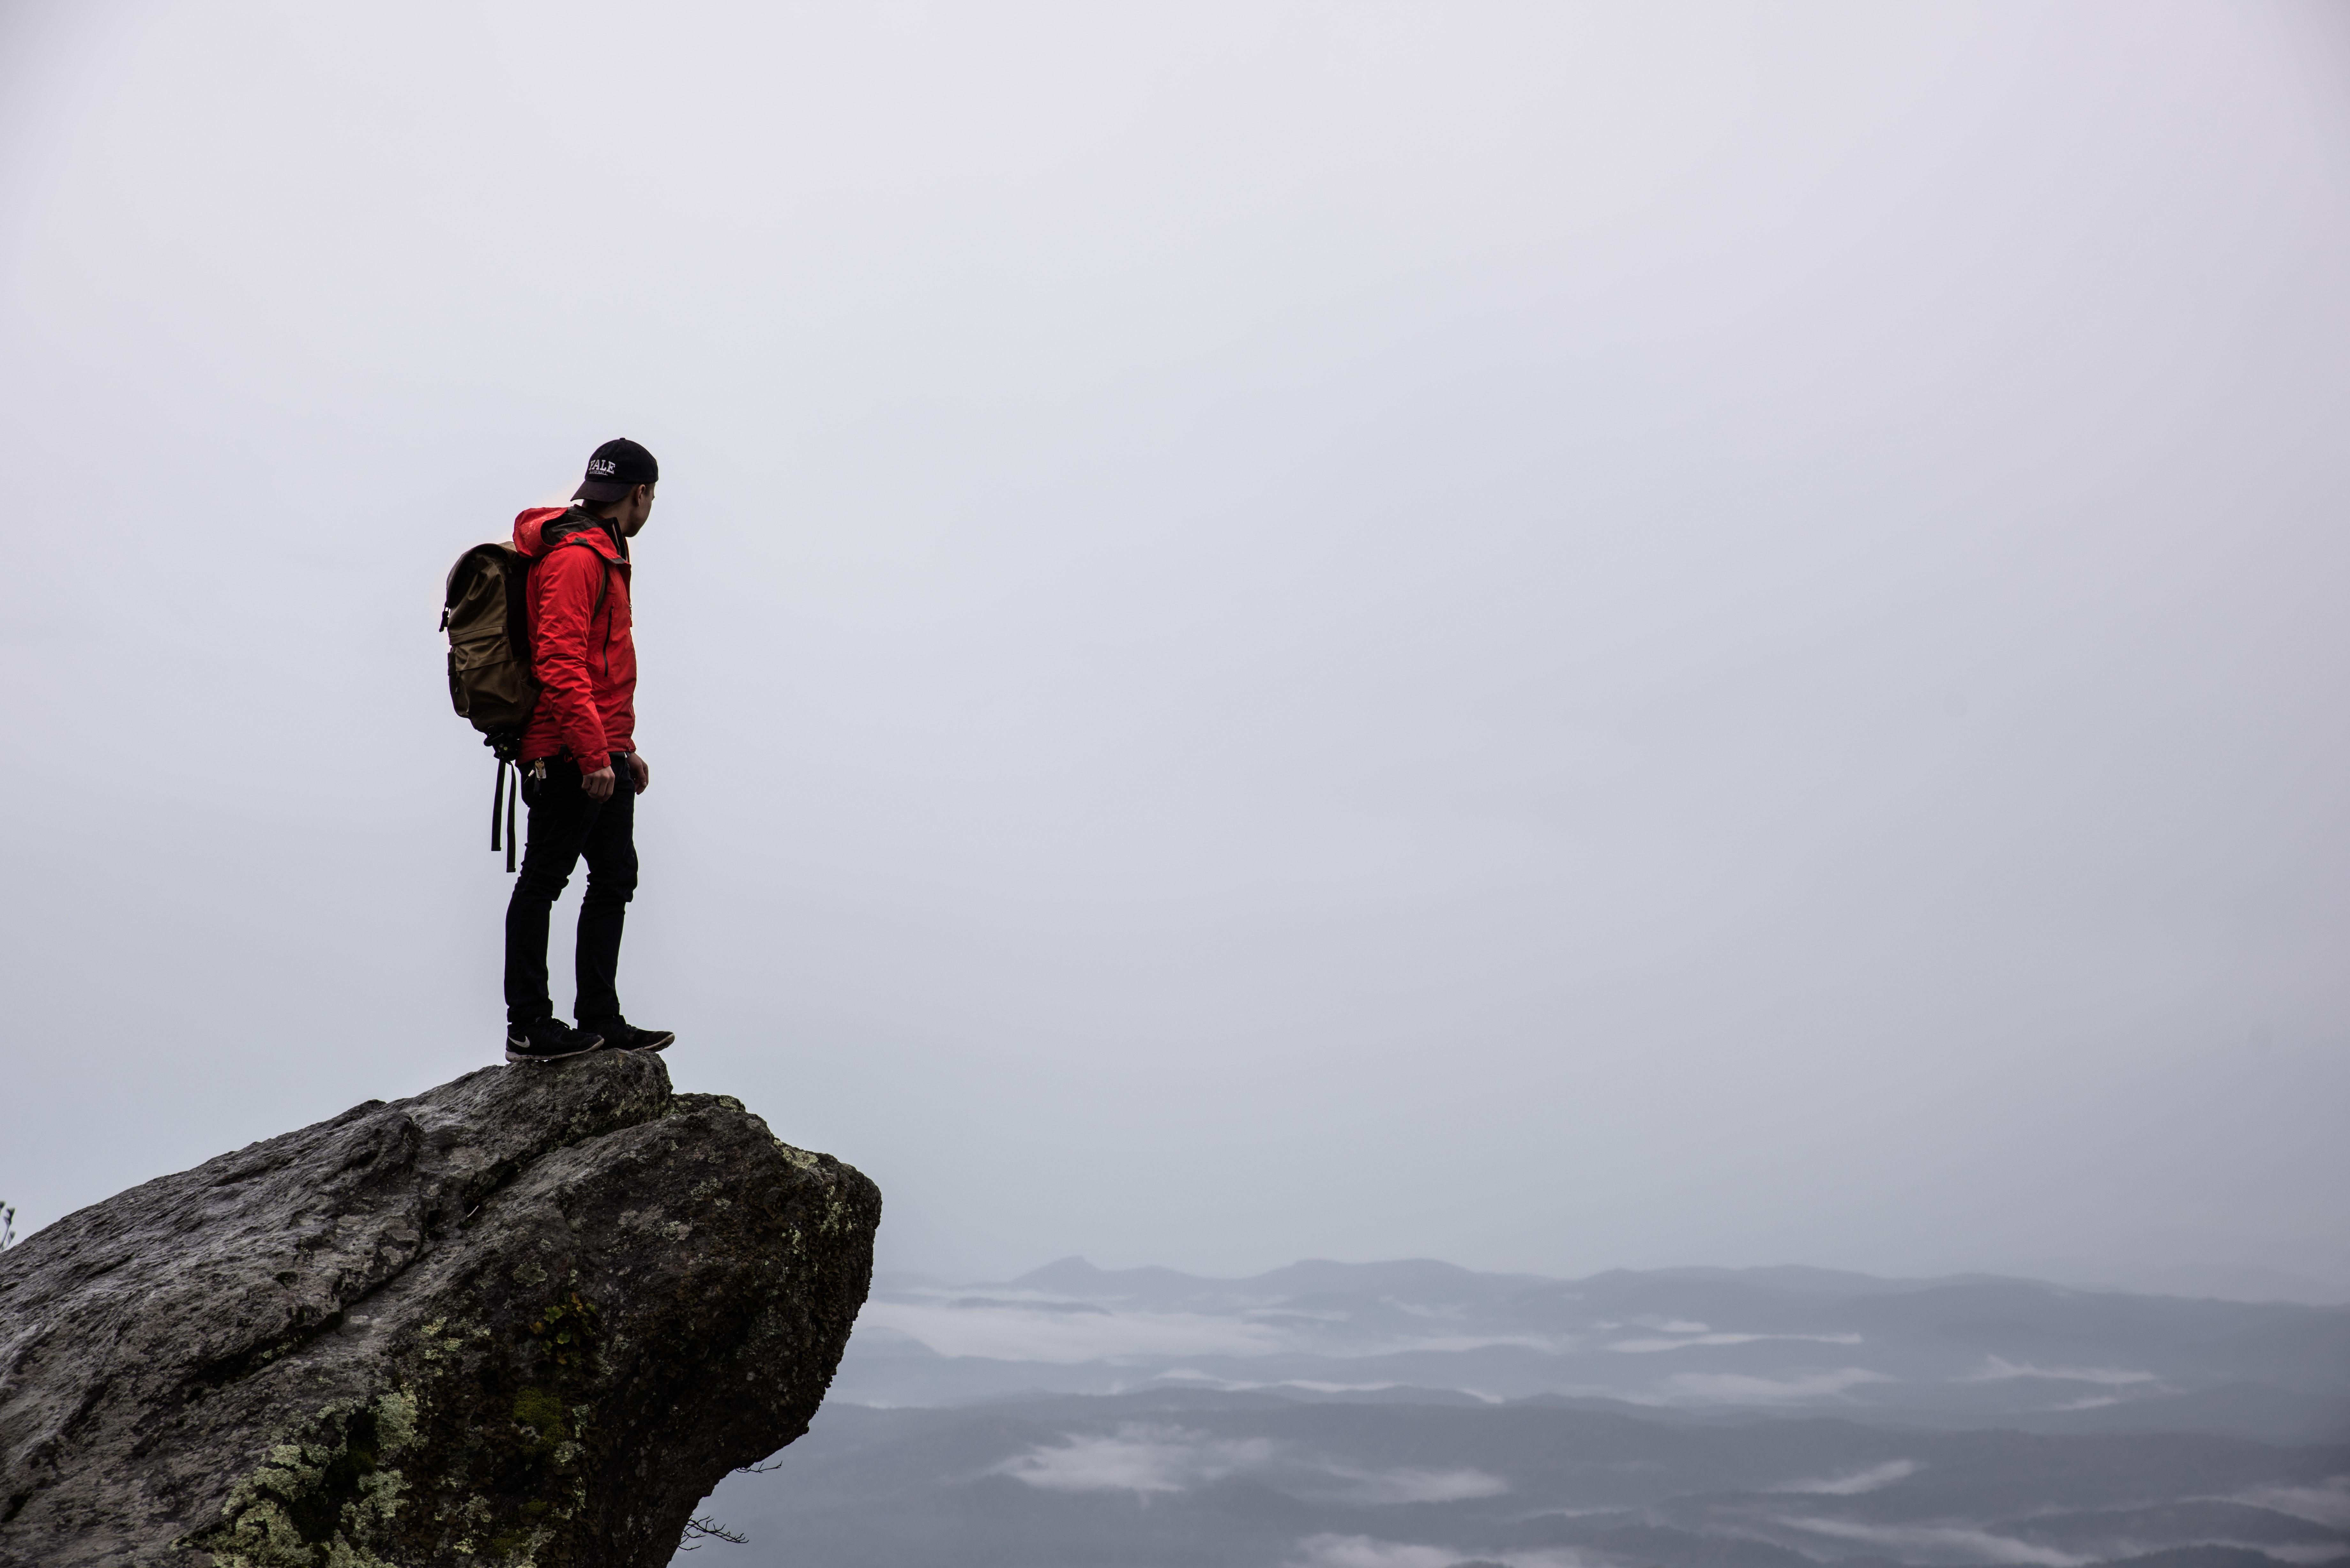 A man with a backpack standing on a ledge overlooking a vast misty plain